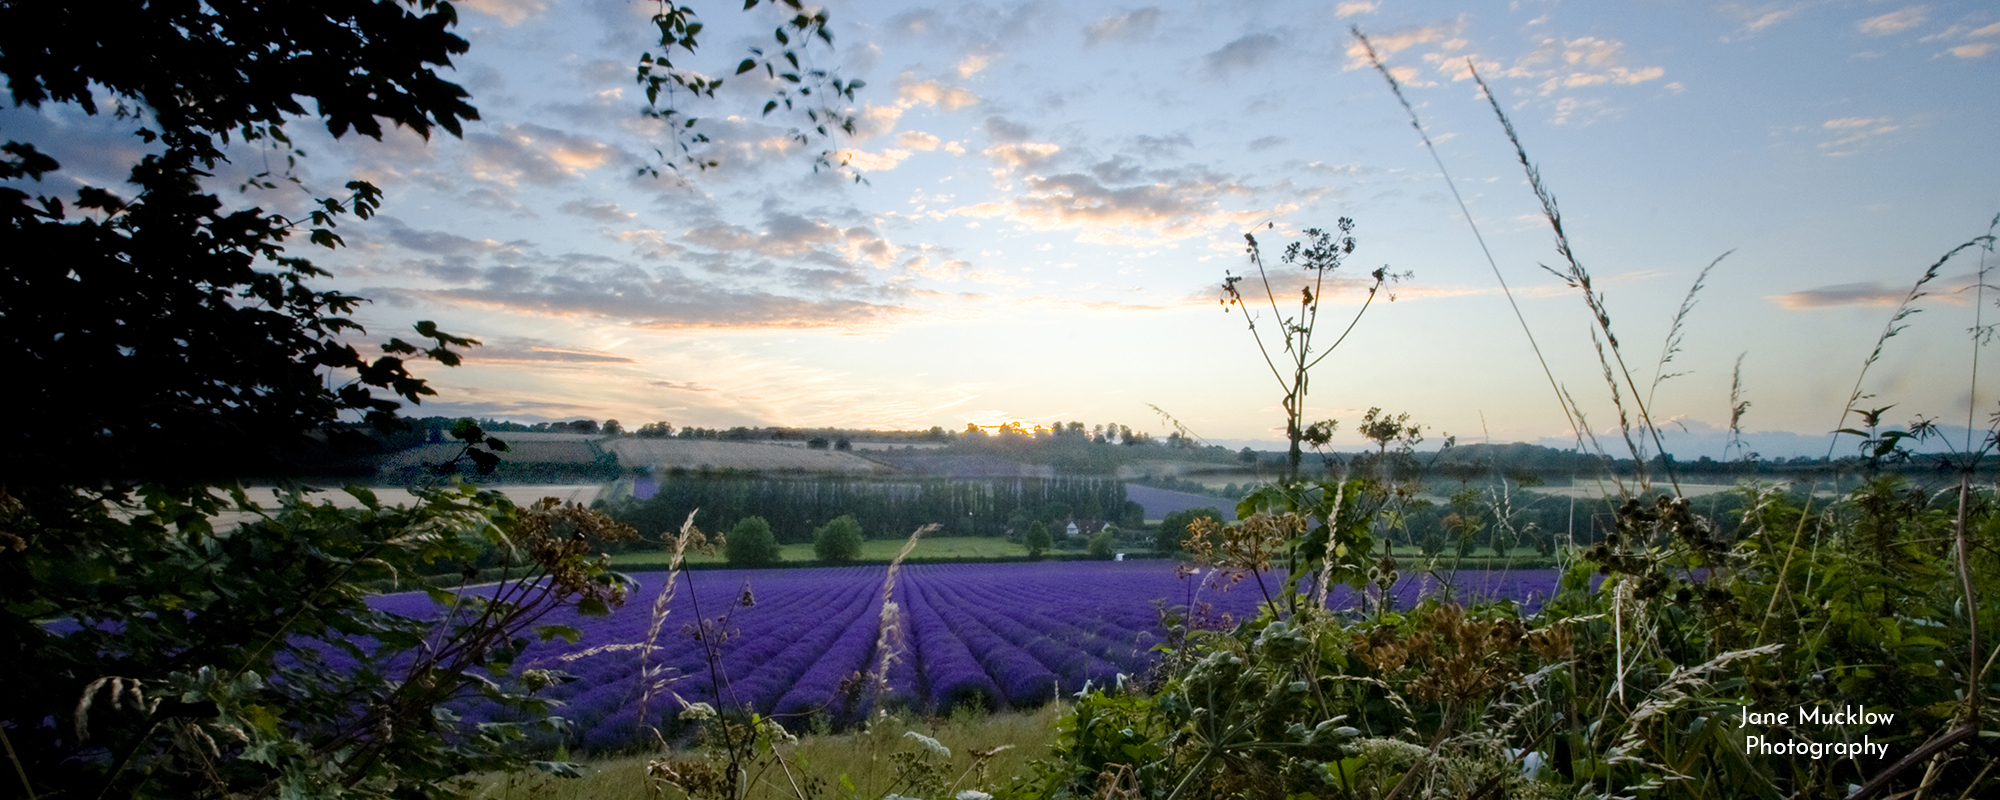 Photo by Jane Mucklow of Castle Farm lavender fields at sunset, Shoreham Kent, available as a canvas for your wall.